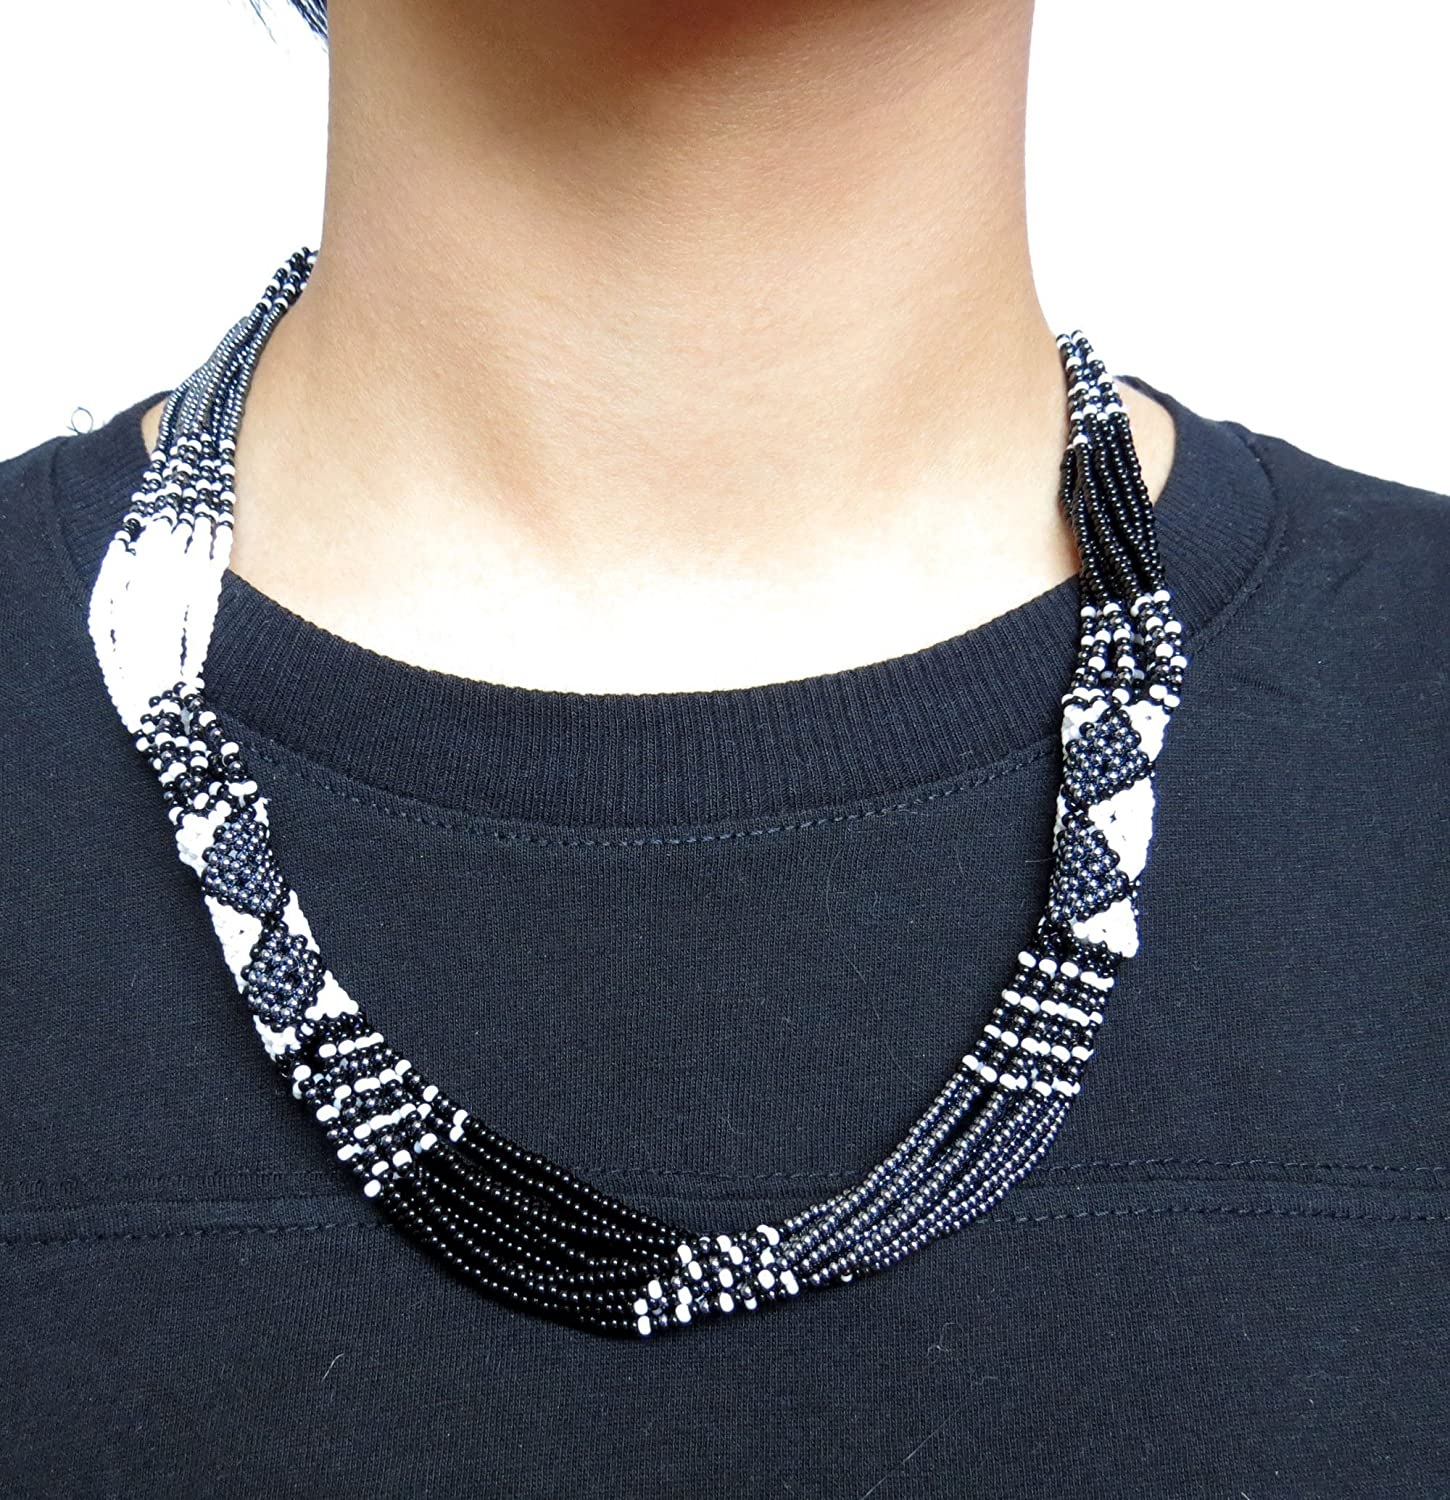 African Zulu beaded short necklace Black//White//Gunmetal